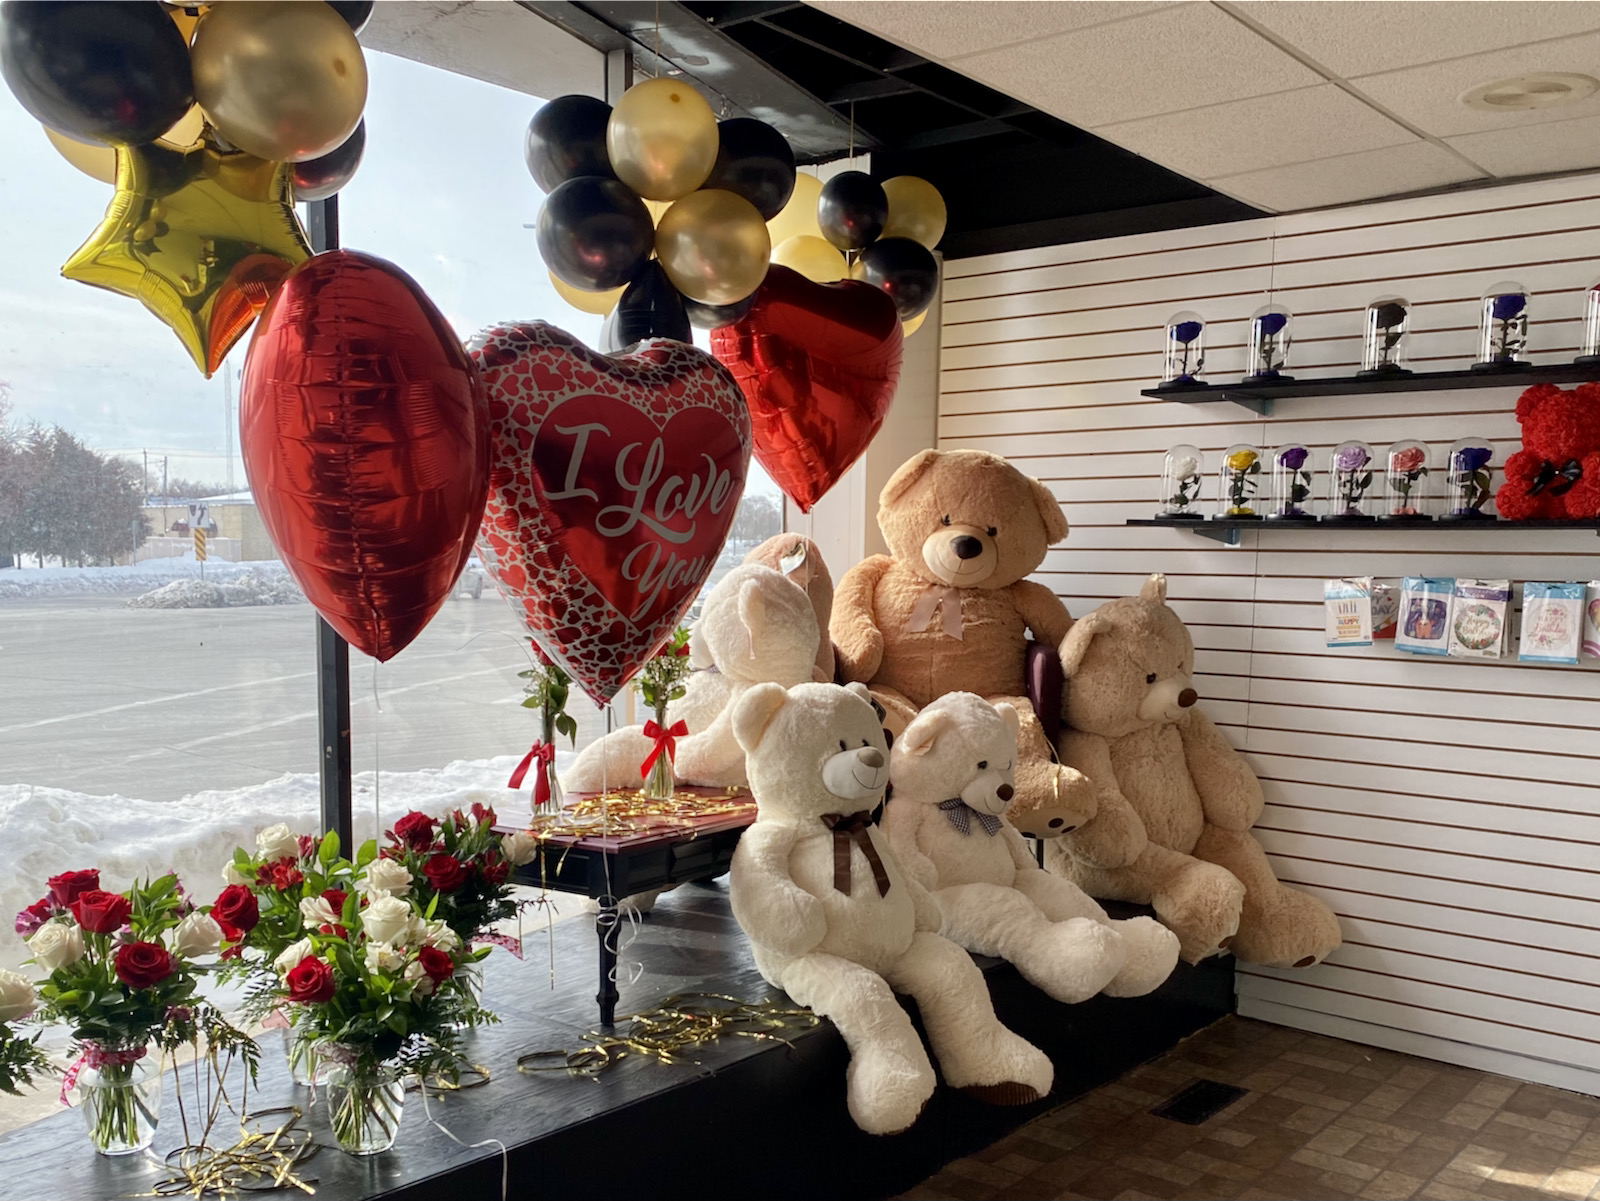 Teddy bears, flowers and gifts at Piece of Love